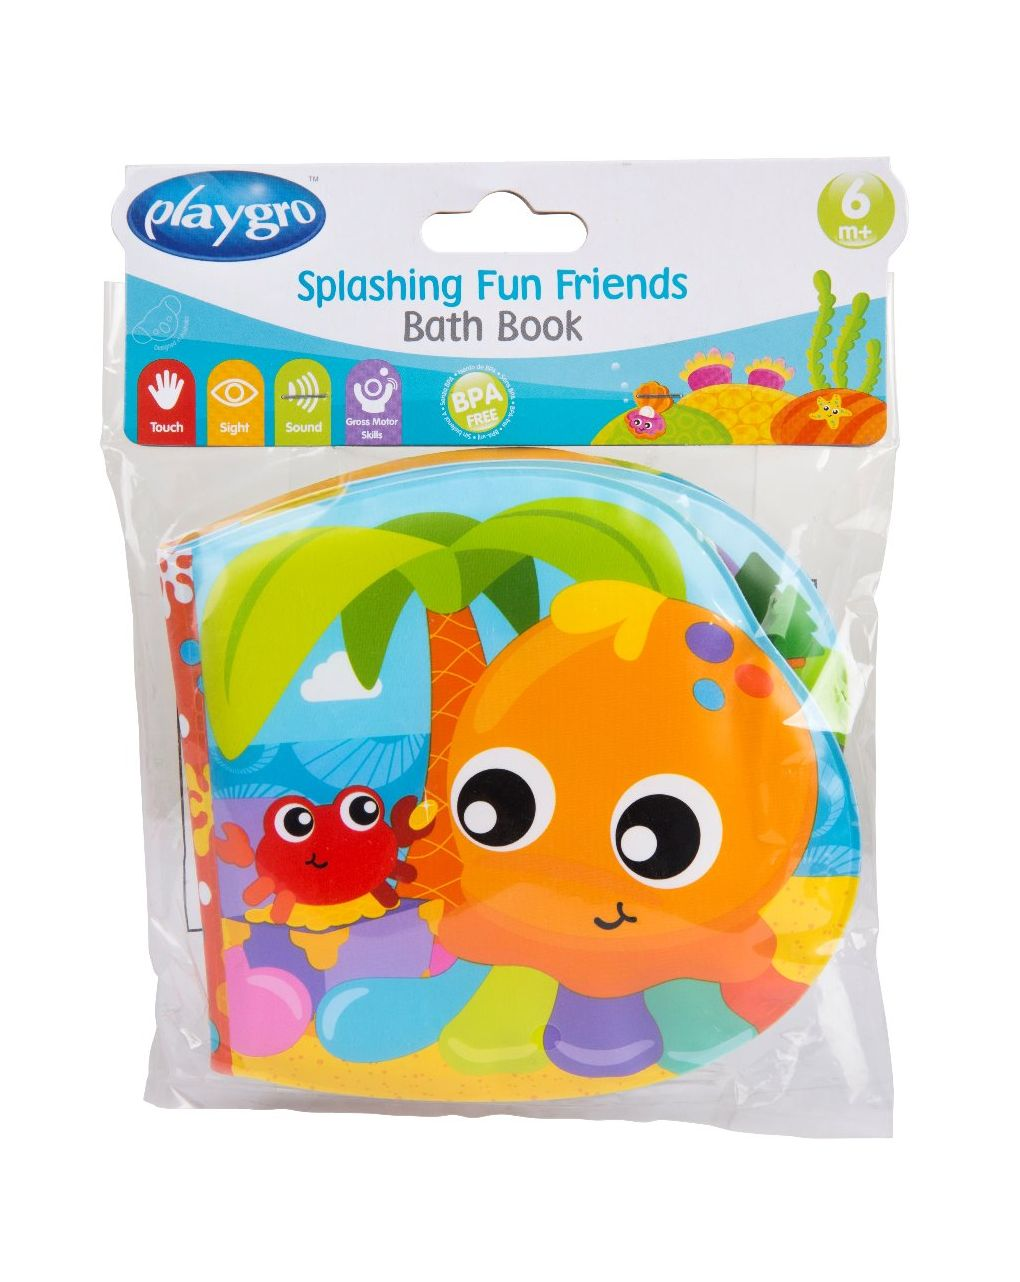 Splashing fun friends bath book - Playgro